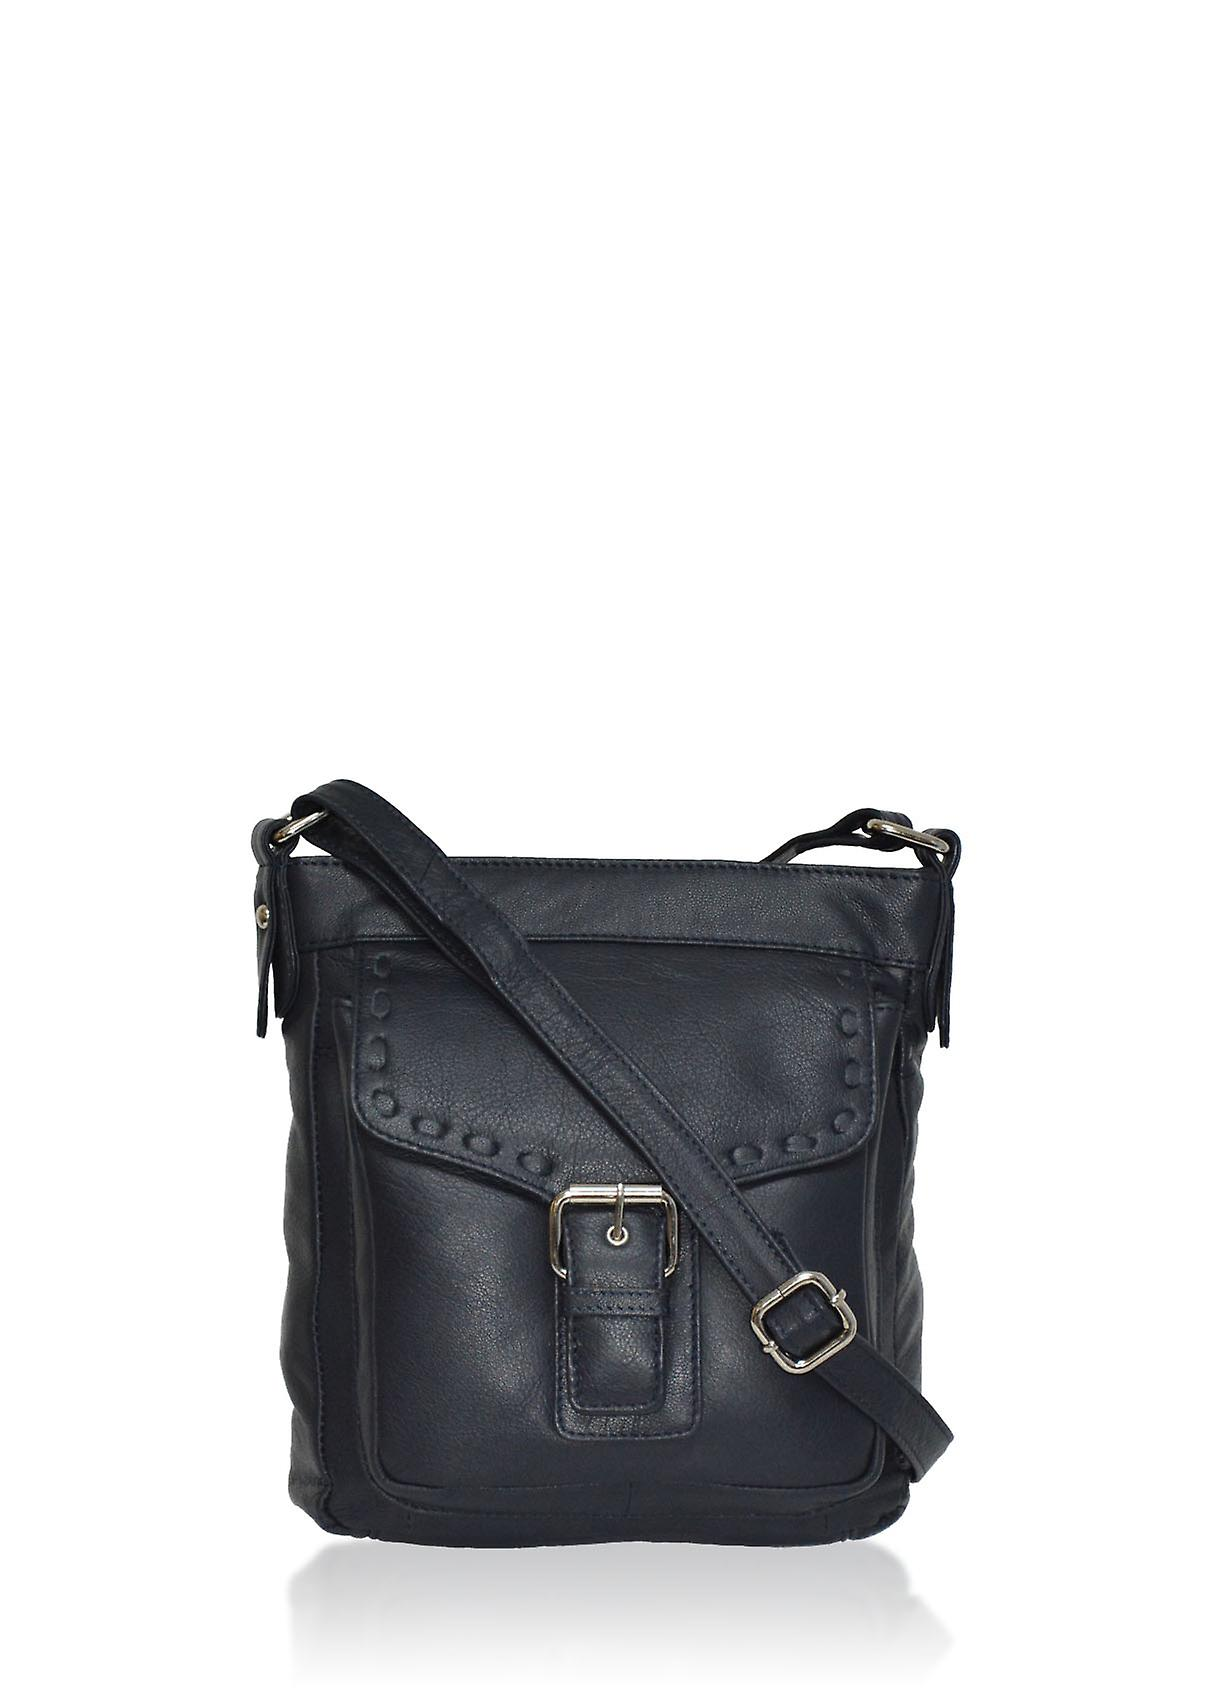 Roma Leather Across Body Bag in Navy